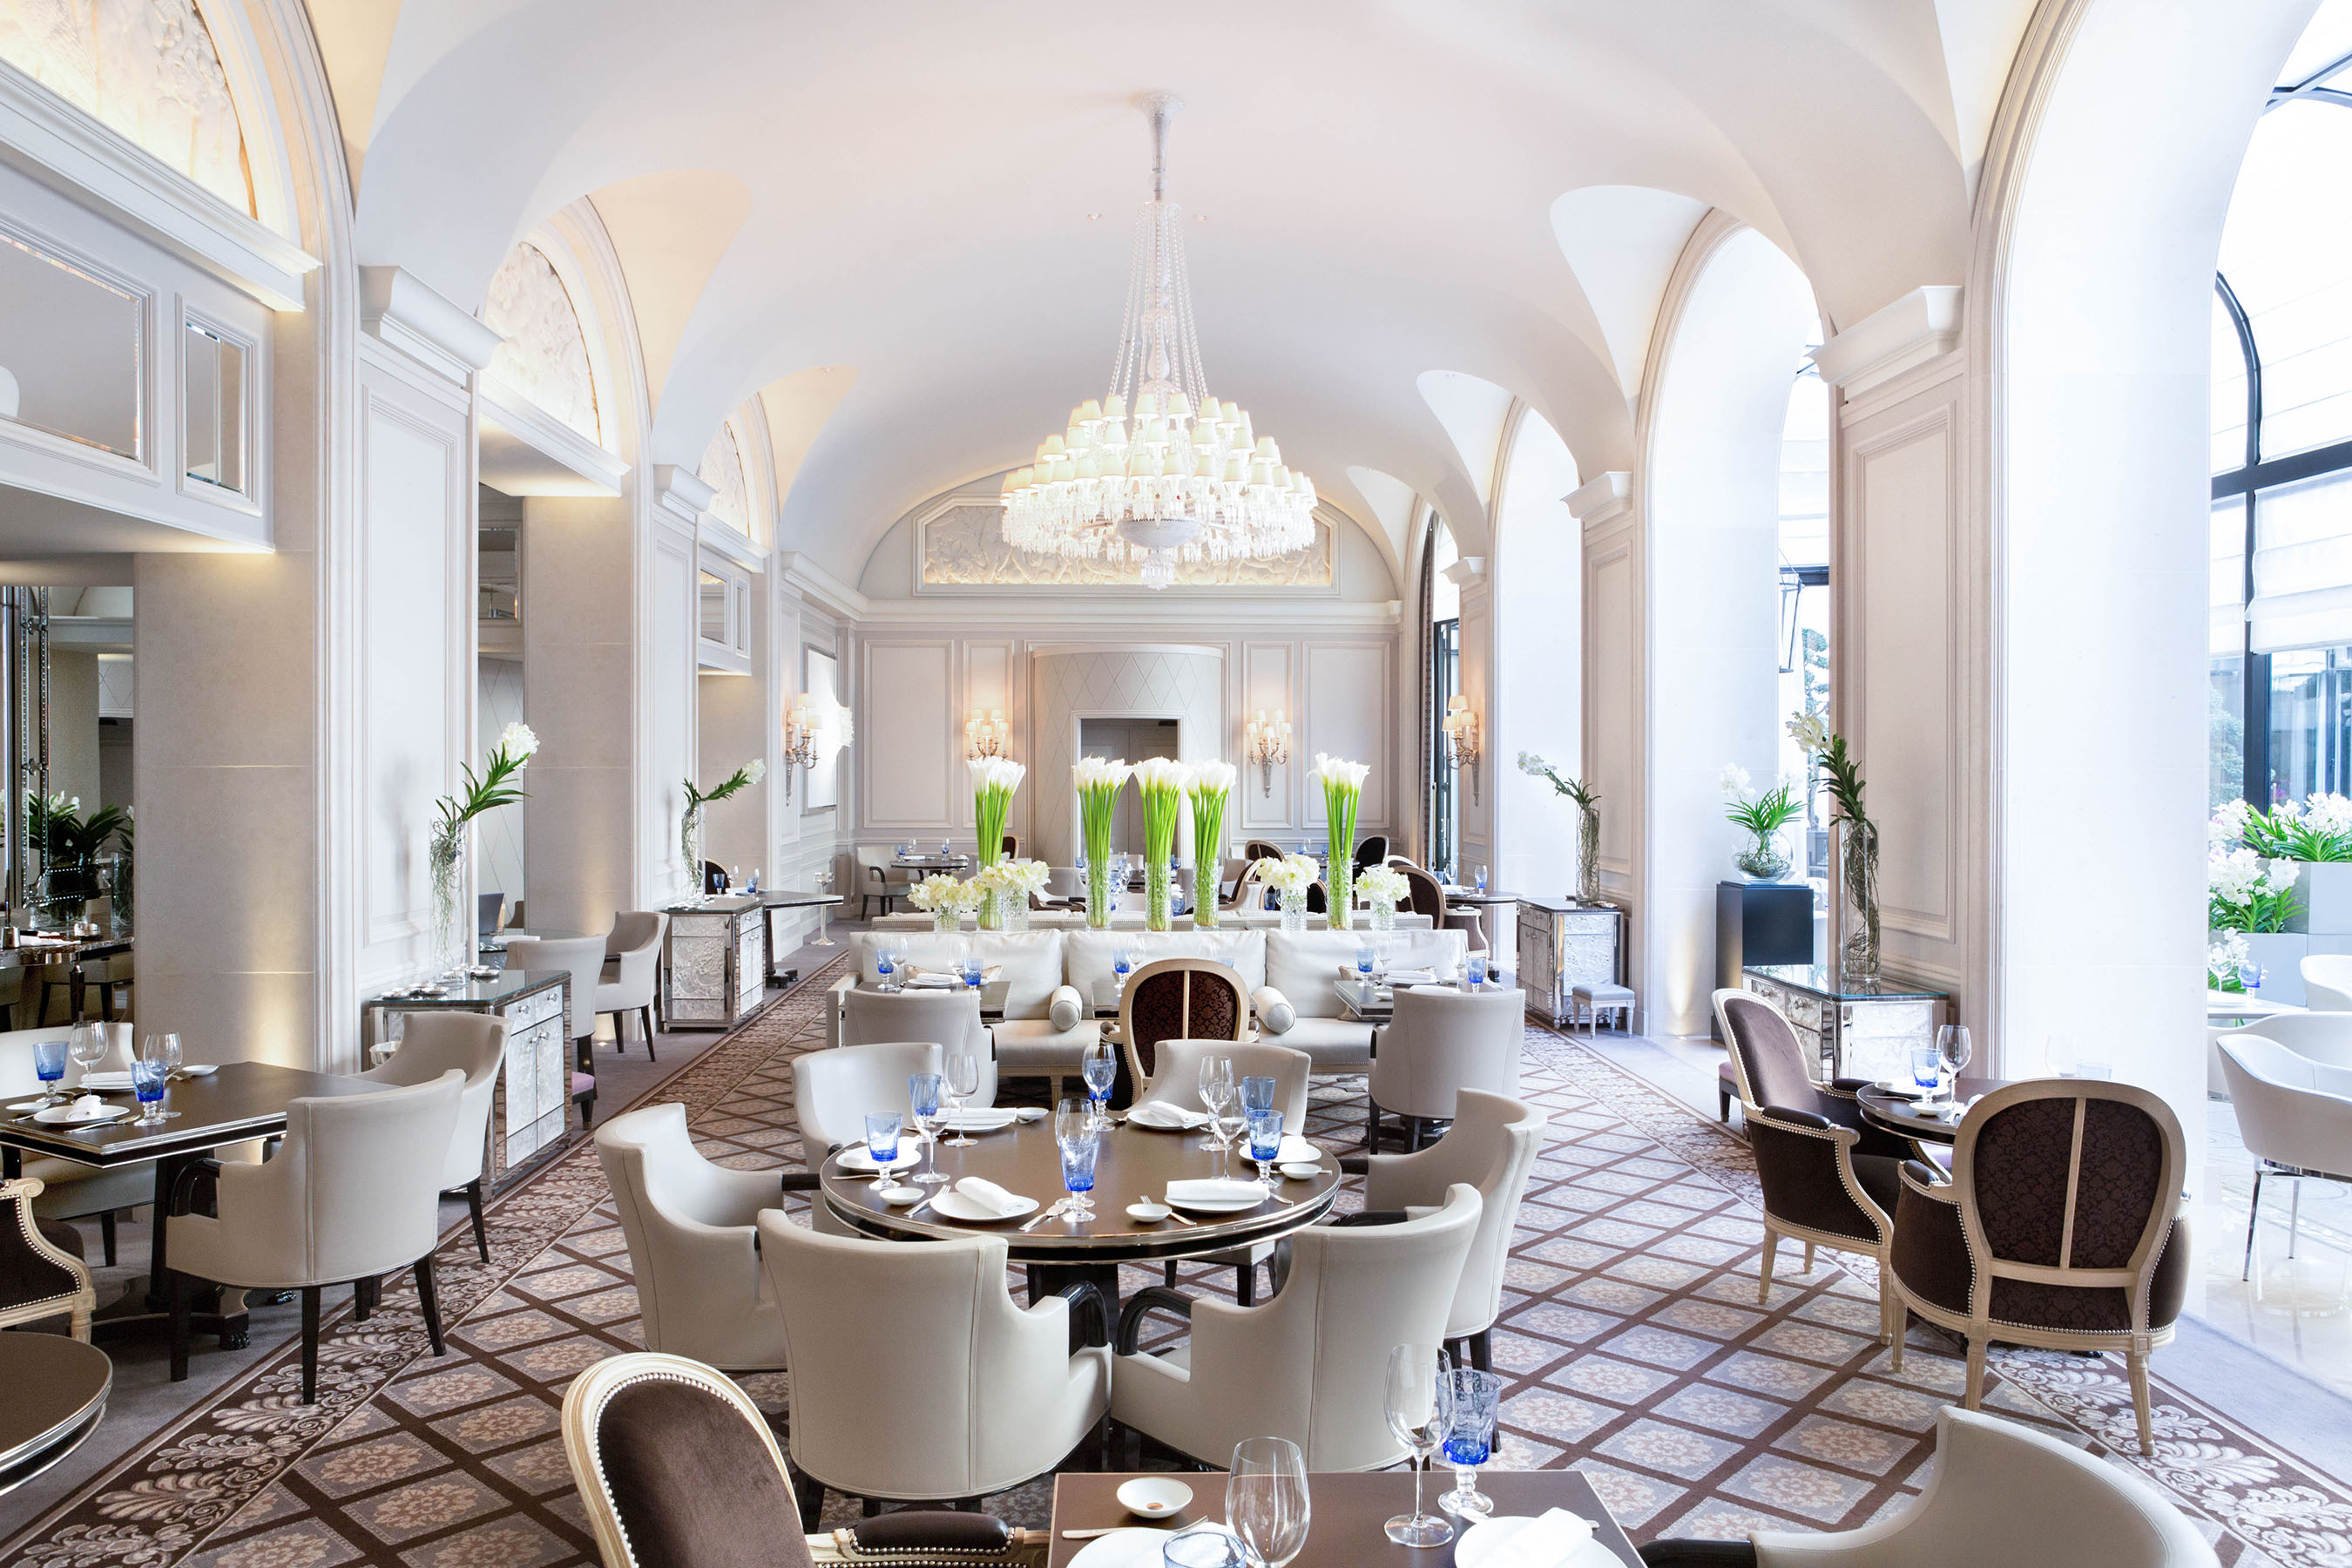 Four Seasons Hotel George V Paris Becomes The First In Europe To House Three Restaurants Recognised By Coveted Michelin Award For A Total Of Five